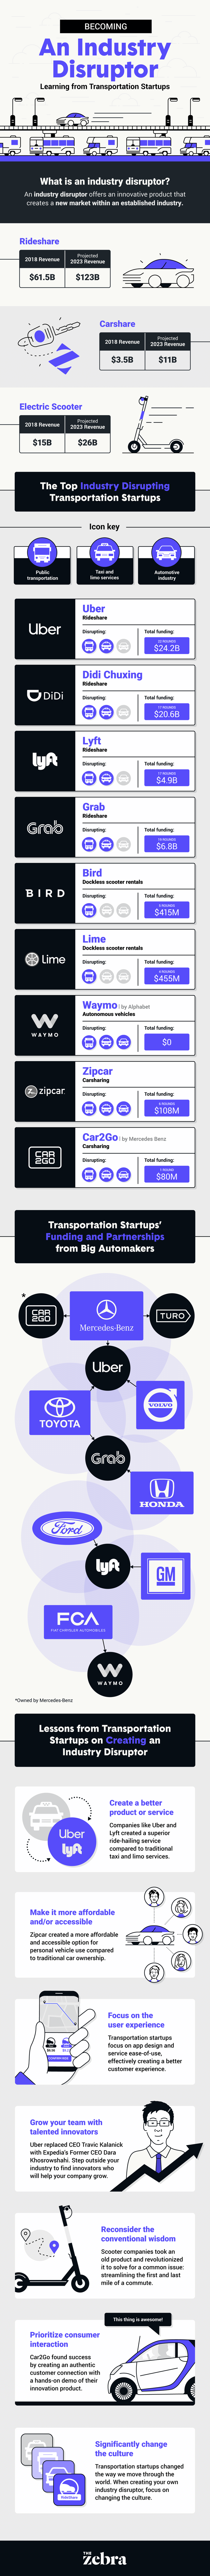 becoming_an_industry_disruptor_infographic_1.width-800